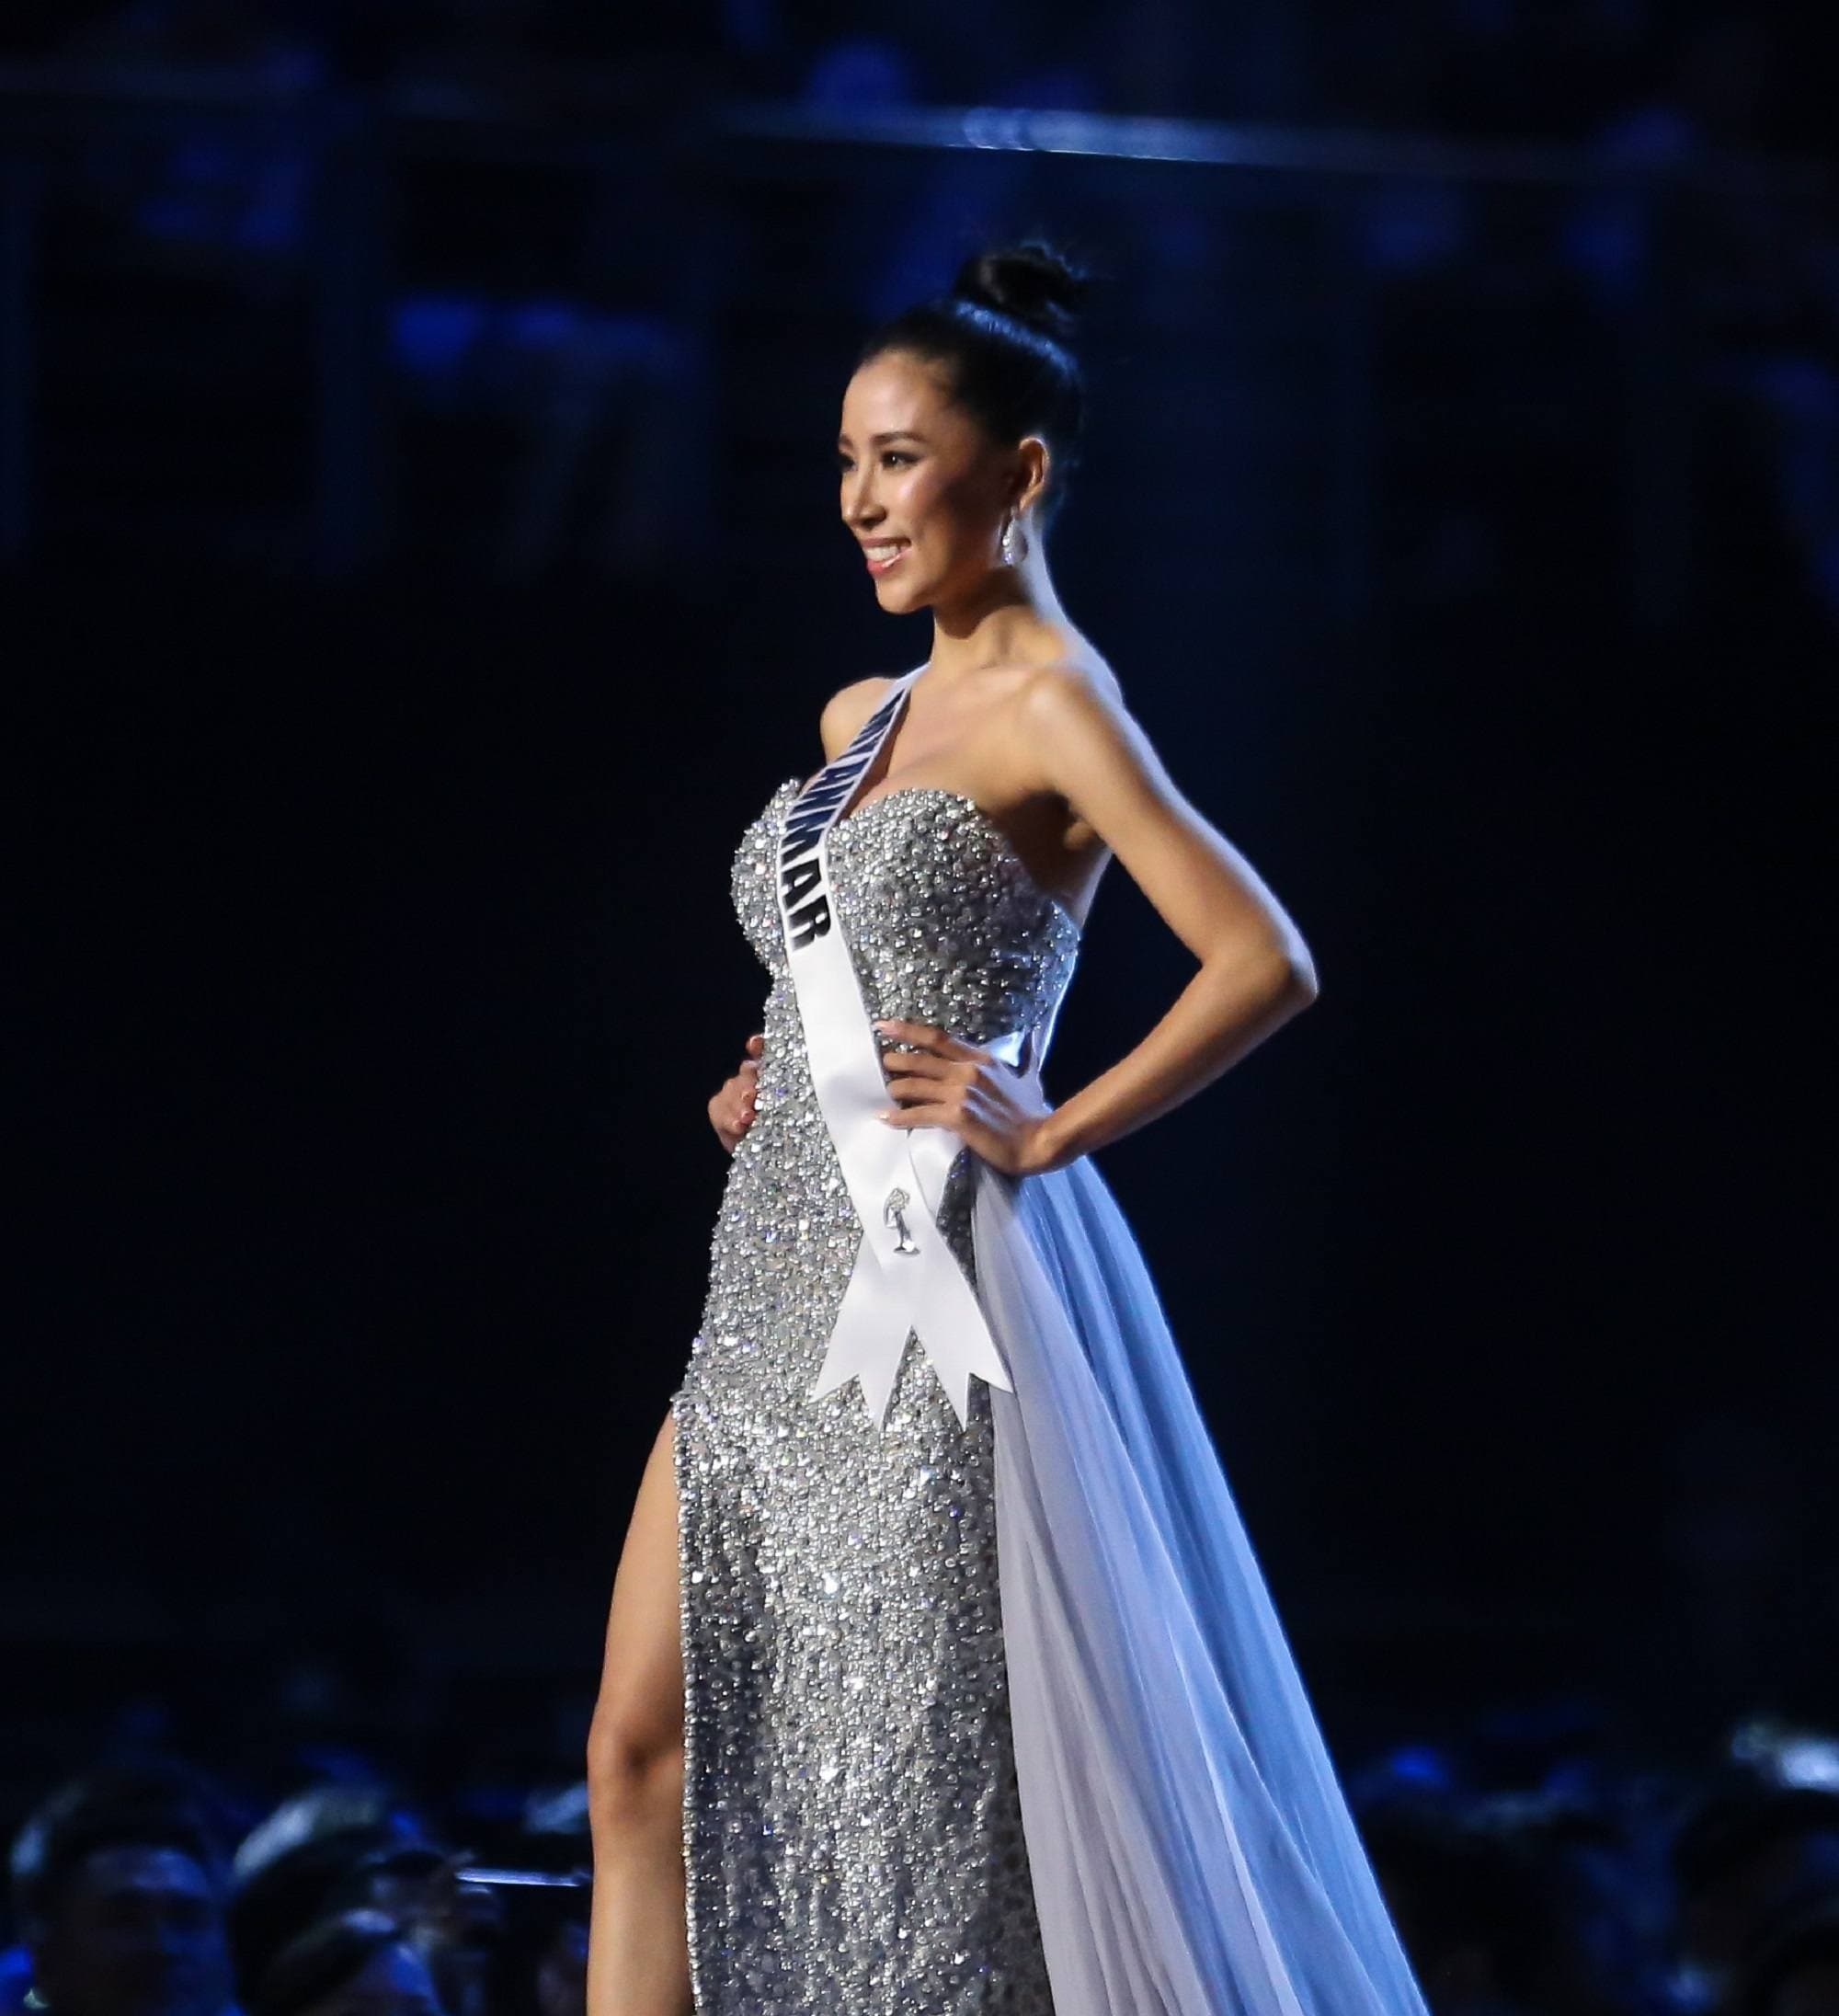 Miss Universe 2018 hairstyles: Miss Myanmar Hnin Thway Yu Aung with black hair in ballerina bun wearing a silver gown on stage